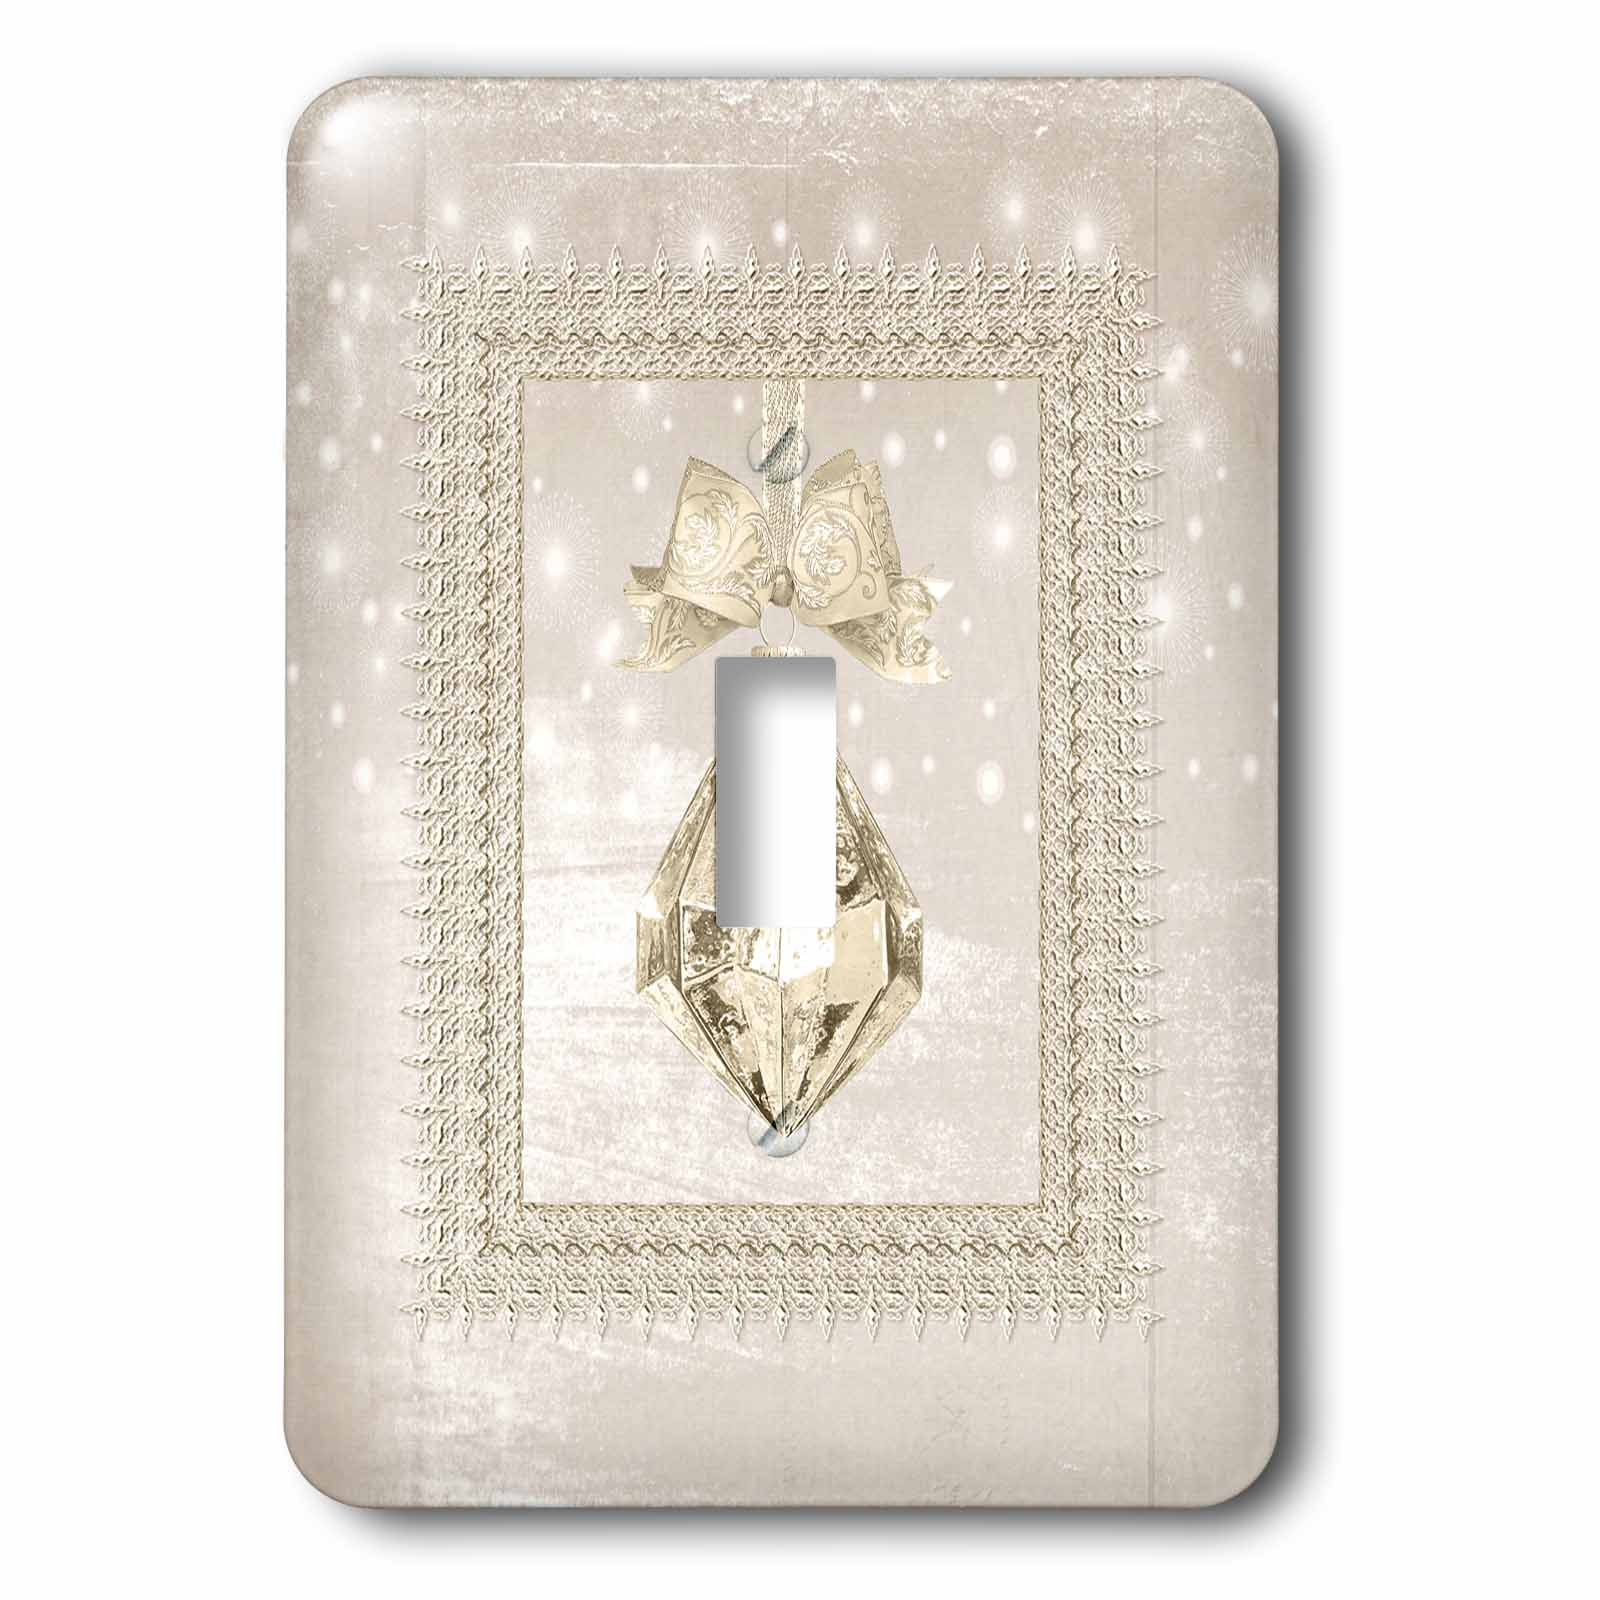 3dRose Gold Crystal Look Ornament in Gold Frame on Lights, Cream - Single Toggle Switch